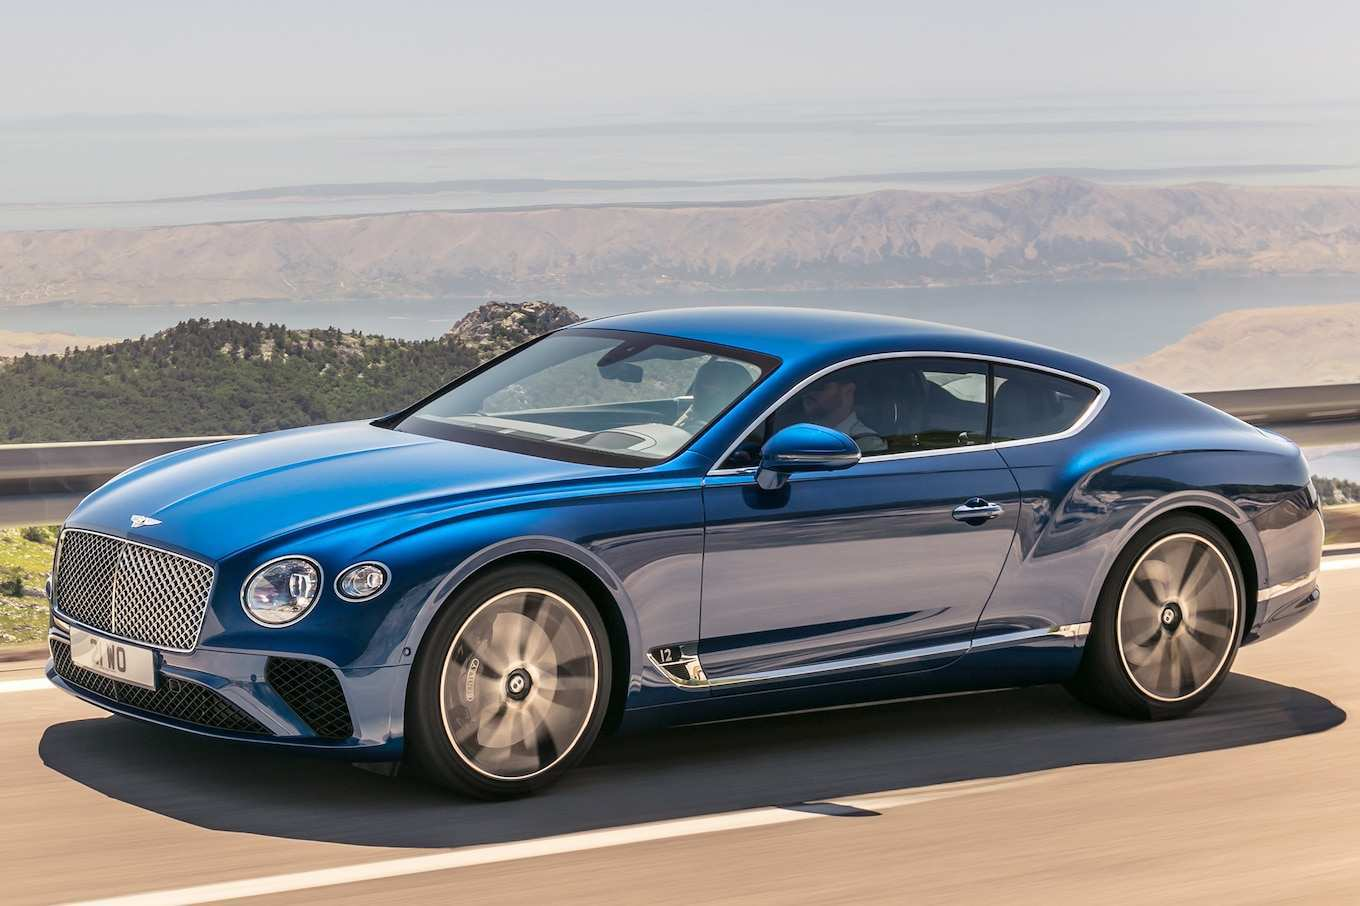 84 New 2019 Bentley Continental Gt Msrp Price and Review by 2019 Bentley Continental Gt Msrp